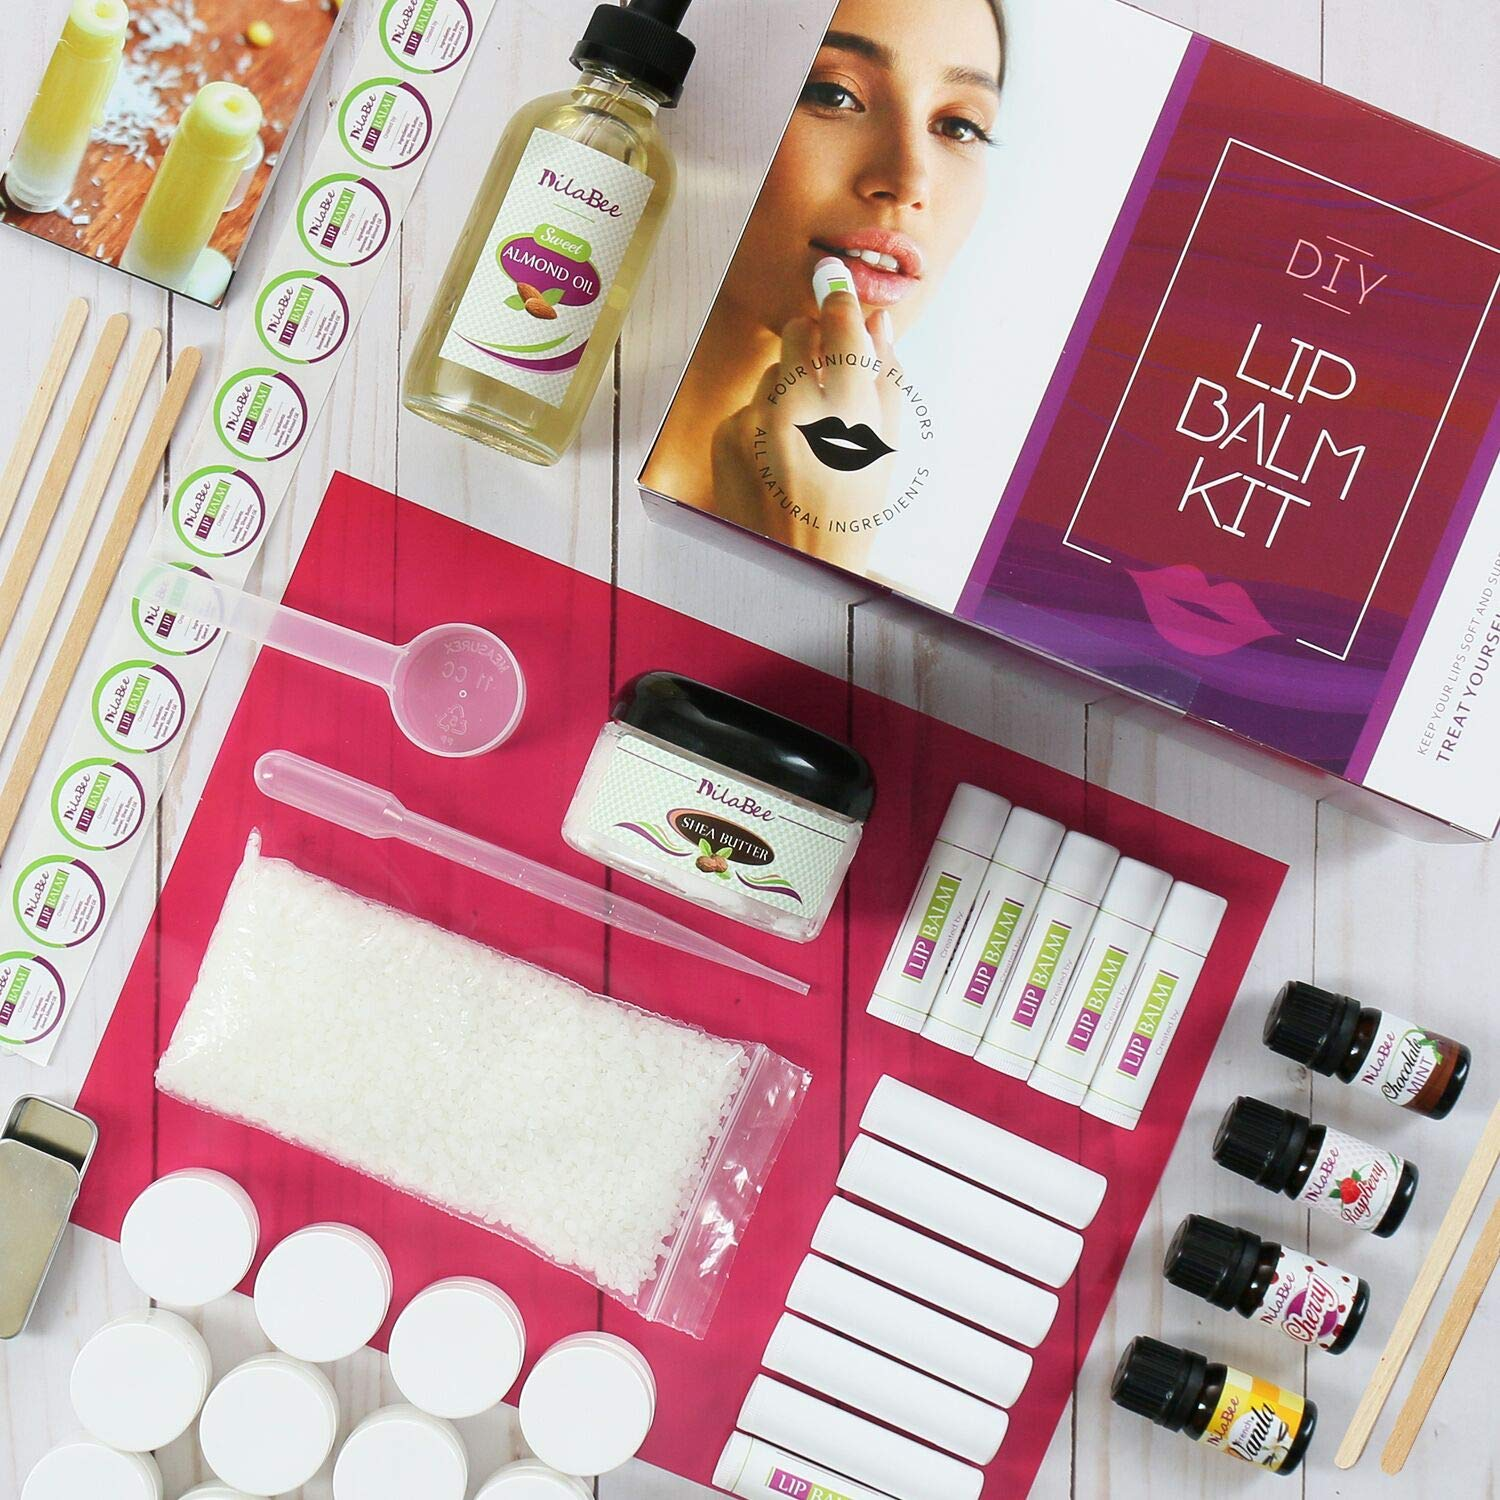 Lip Balm Making Kit | Supplies, Instructions, Labels for 25 Lush Lip Balms - All Natural Formula With Beeswax, Shea Butter, Almond Oil+ 4 Rich Flavors | Best Mother's Day Gift & Craft Kit For Adults